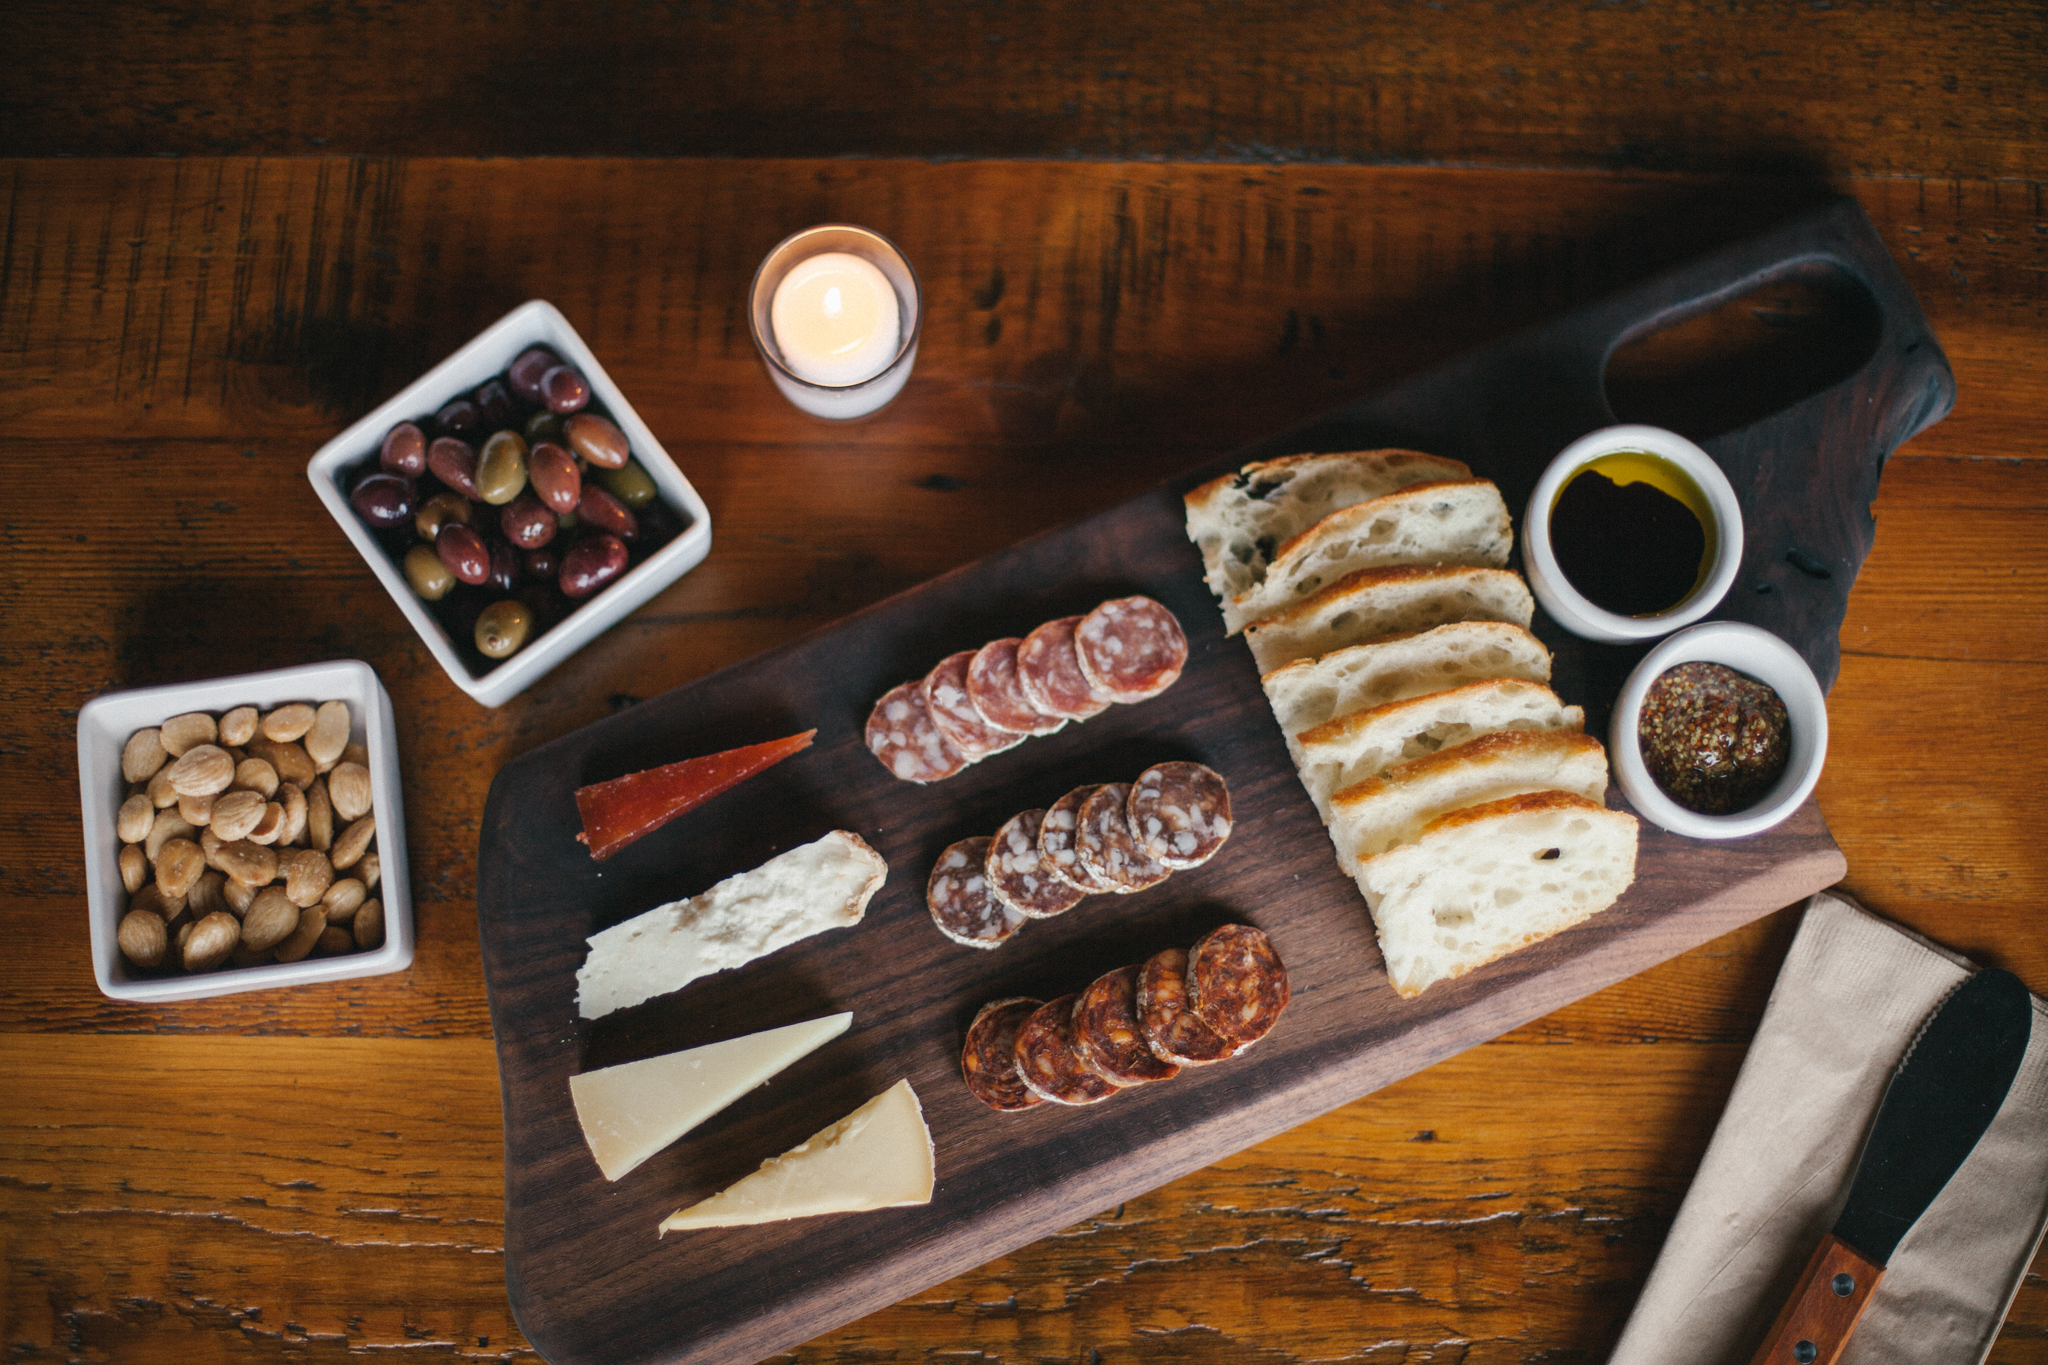 let's pair it up! - With our assortment of local meats and worldly cheeses, you'll satiate your hunger and compliment whatever is in your glass. Almonds, Olives and Chocolates, too!